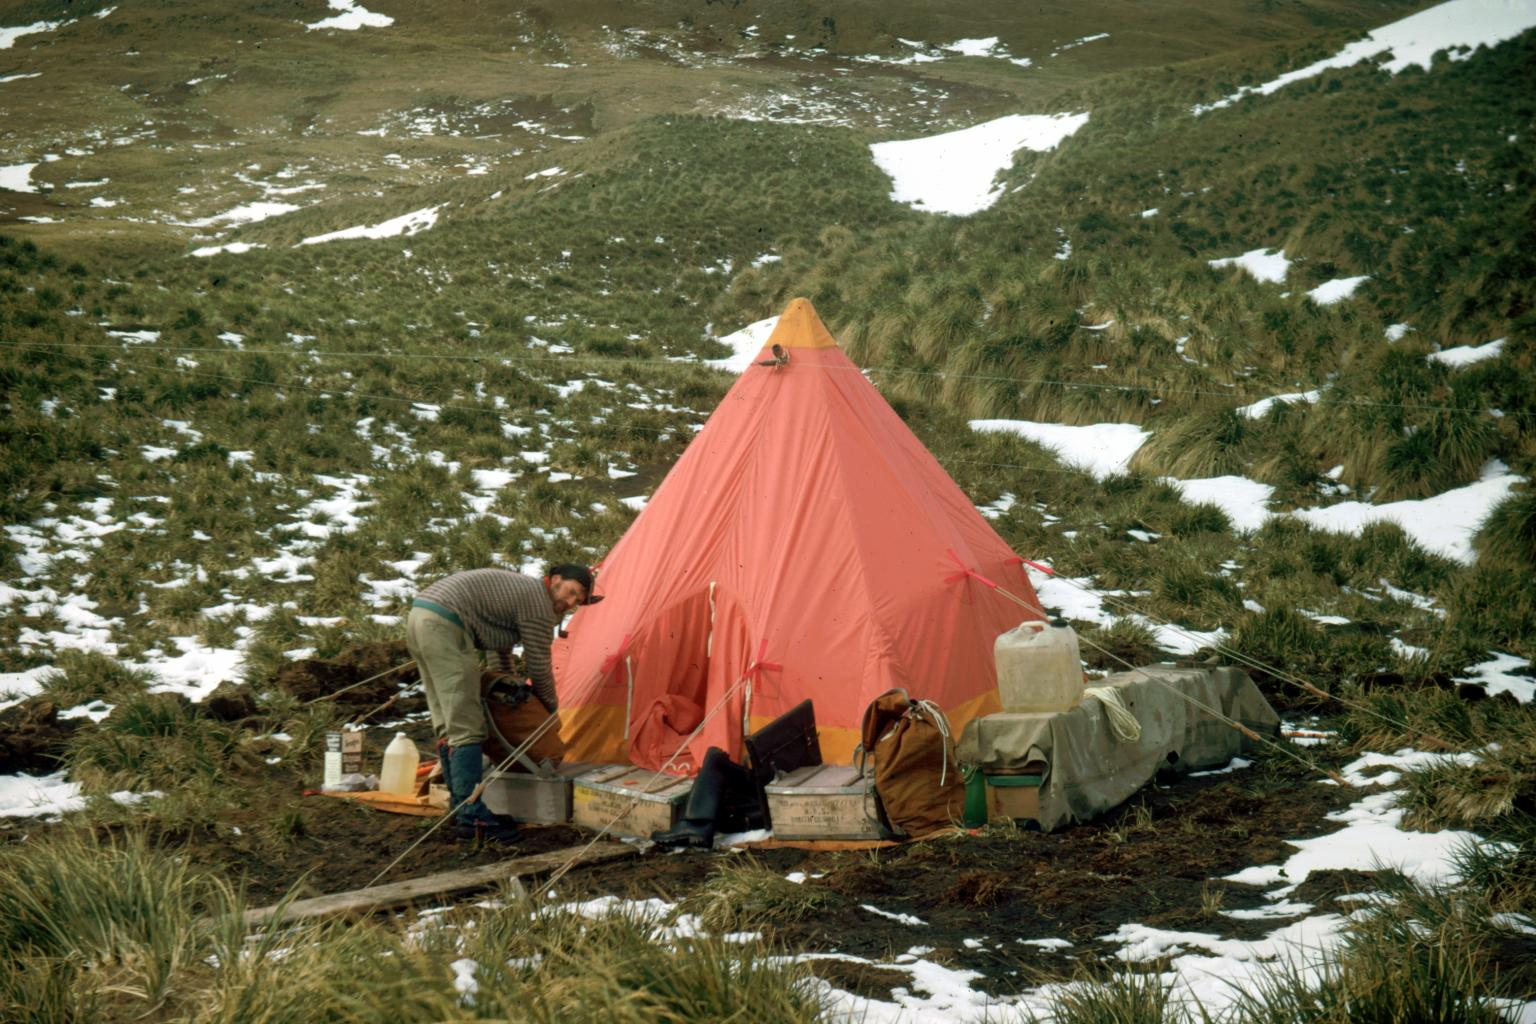 Camping on Annenkov Island, 1972